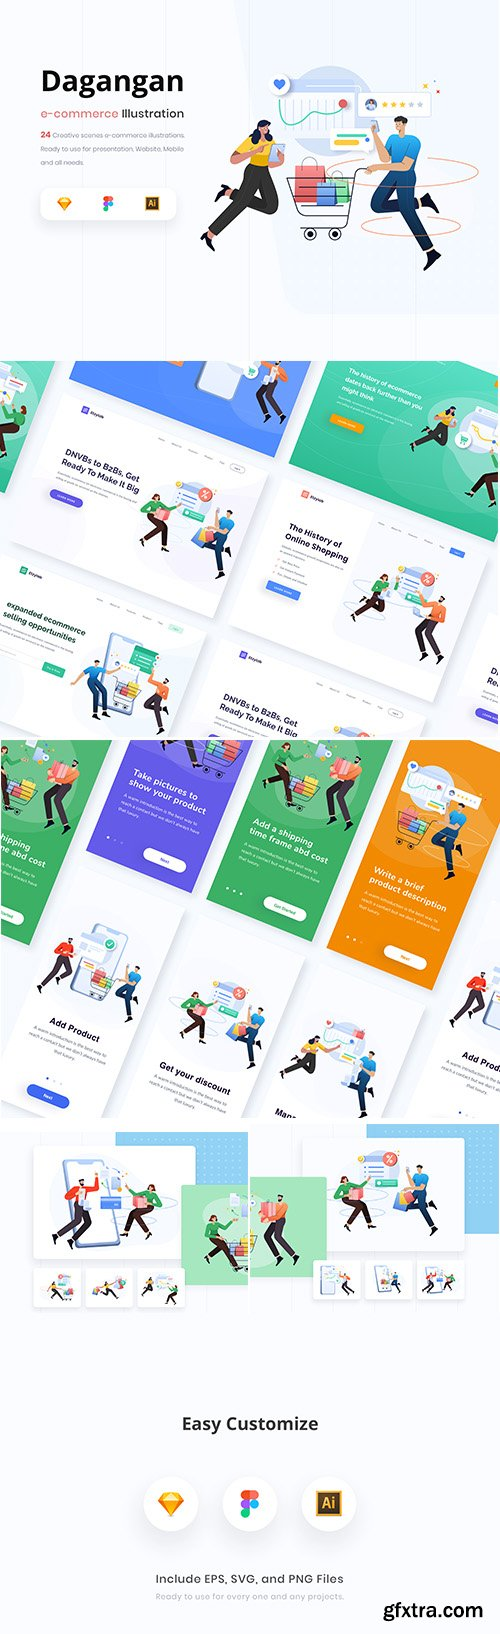 Dagangan - E-commerce and Business Illustration Pack